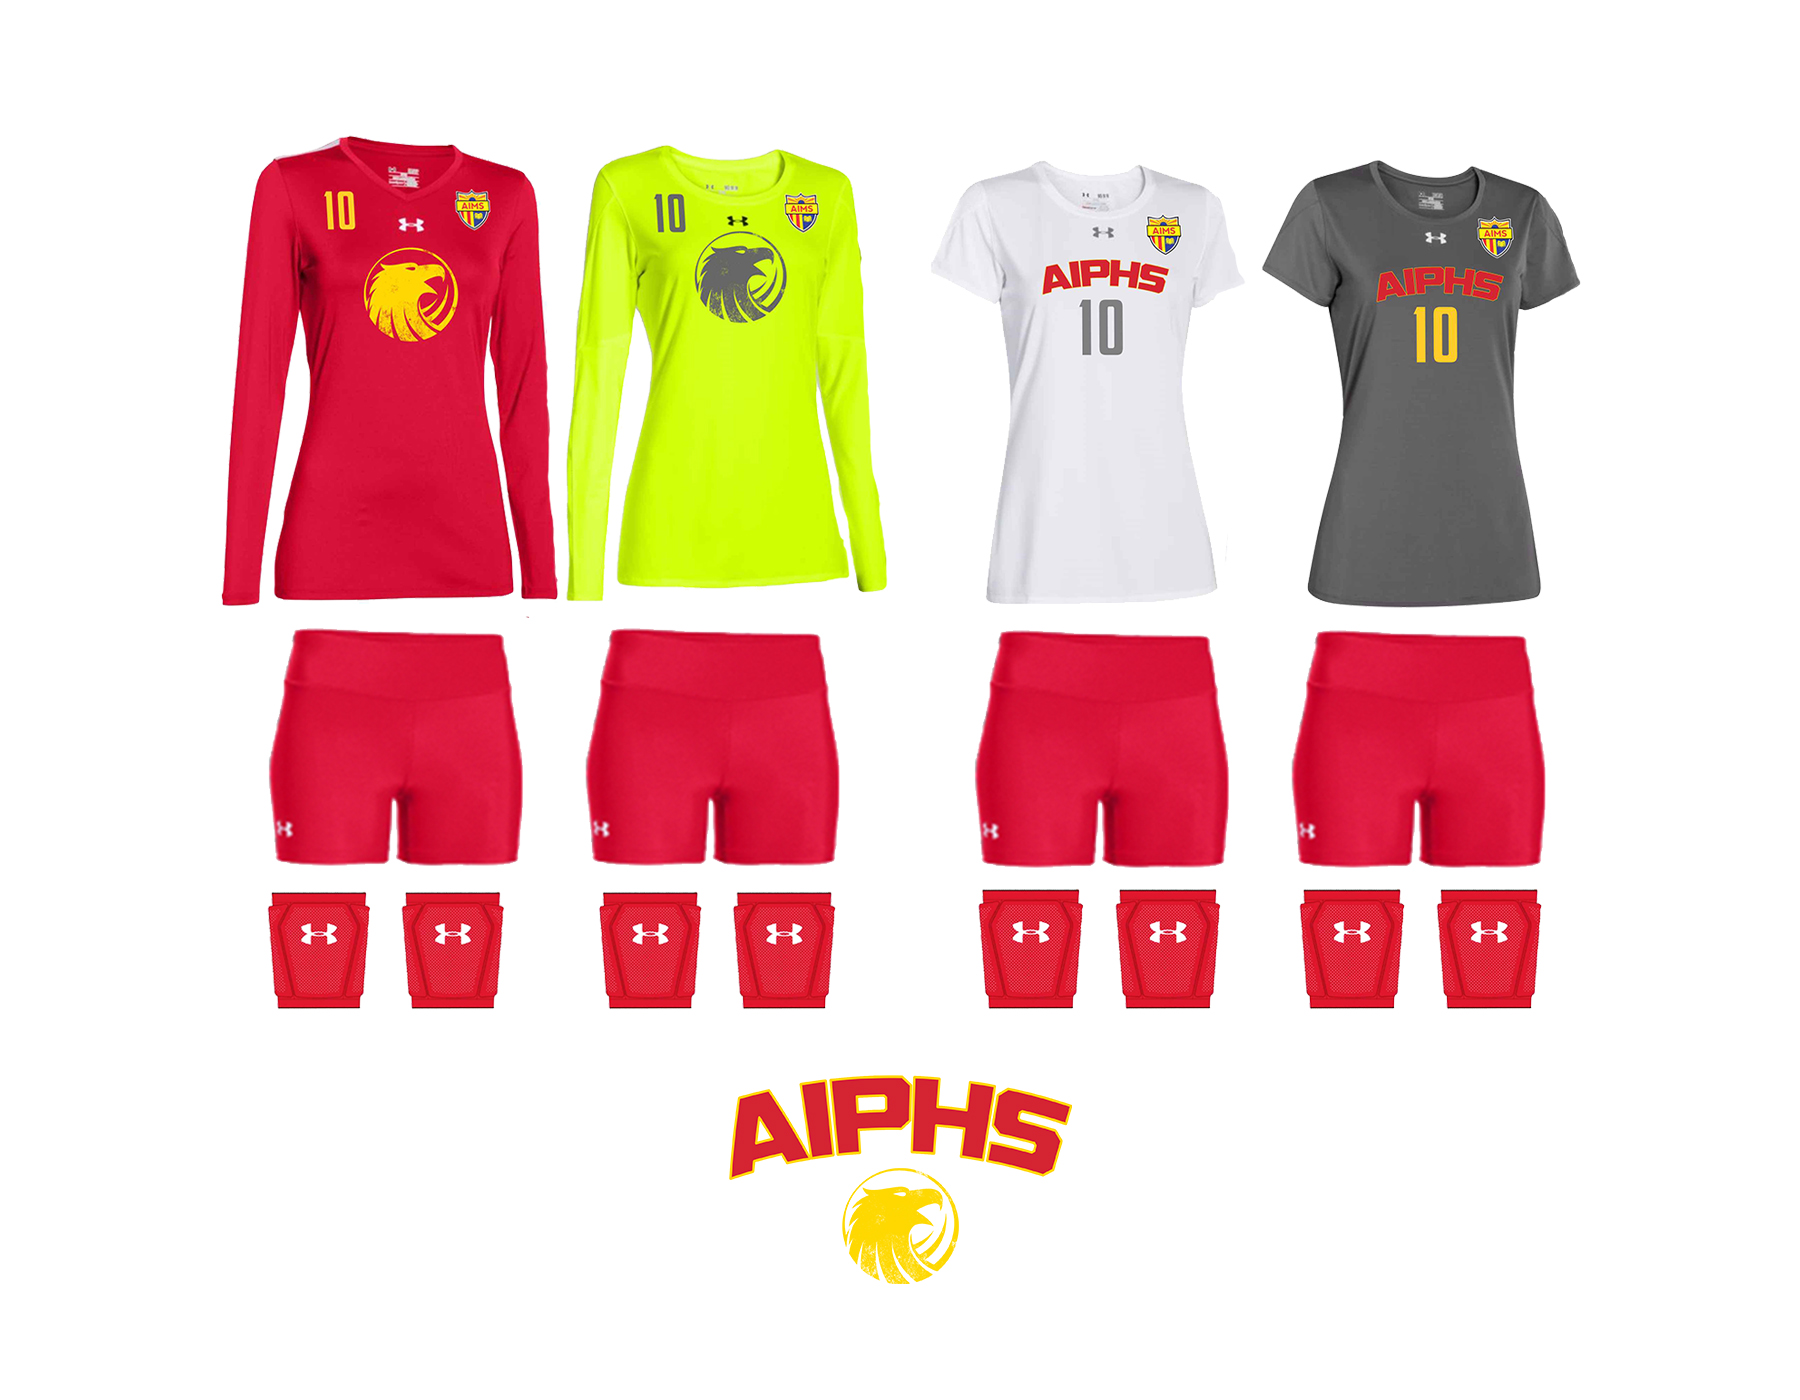 """AIPHS Girls """"Powerhouse"""" Volleyball Uniforms    The AIPHS Girls Volleyball team will wear two """"powerhouse"""" uniforms in their inaugural season within the BACSAC. The girls' red long-sleeved volleyball uniforms feature a gold spiritmark and uniform numbers on the upper-right side of the top, while the long-sleeved libero uniform is neon-green with a charcoal grey spiritmark and logo. The secondary white uniforms feature the red and gold AIPHS Athletic Wordmark with grey numbers, while the libero uniform is grey with gold numbers. Additionally, the girls' volleyball team will wear red volleyball shorts and red knee pads. Lastly, the girls' volleyball team will feature alternating white/red and red/gold """"AIMSTRONG"""" team socks."""